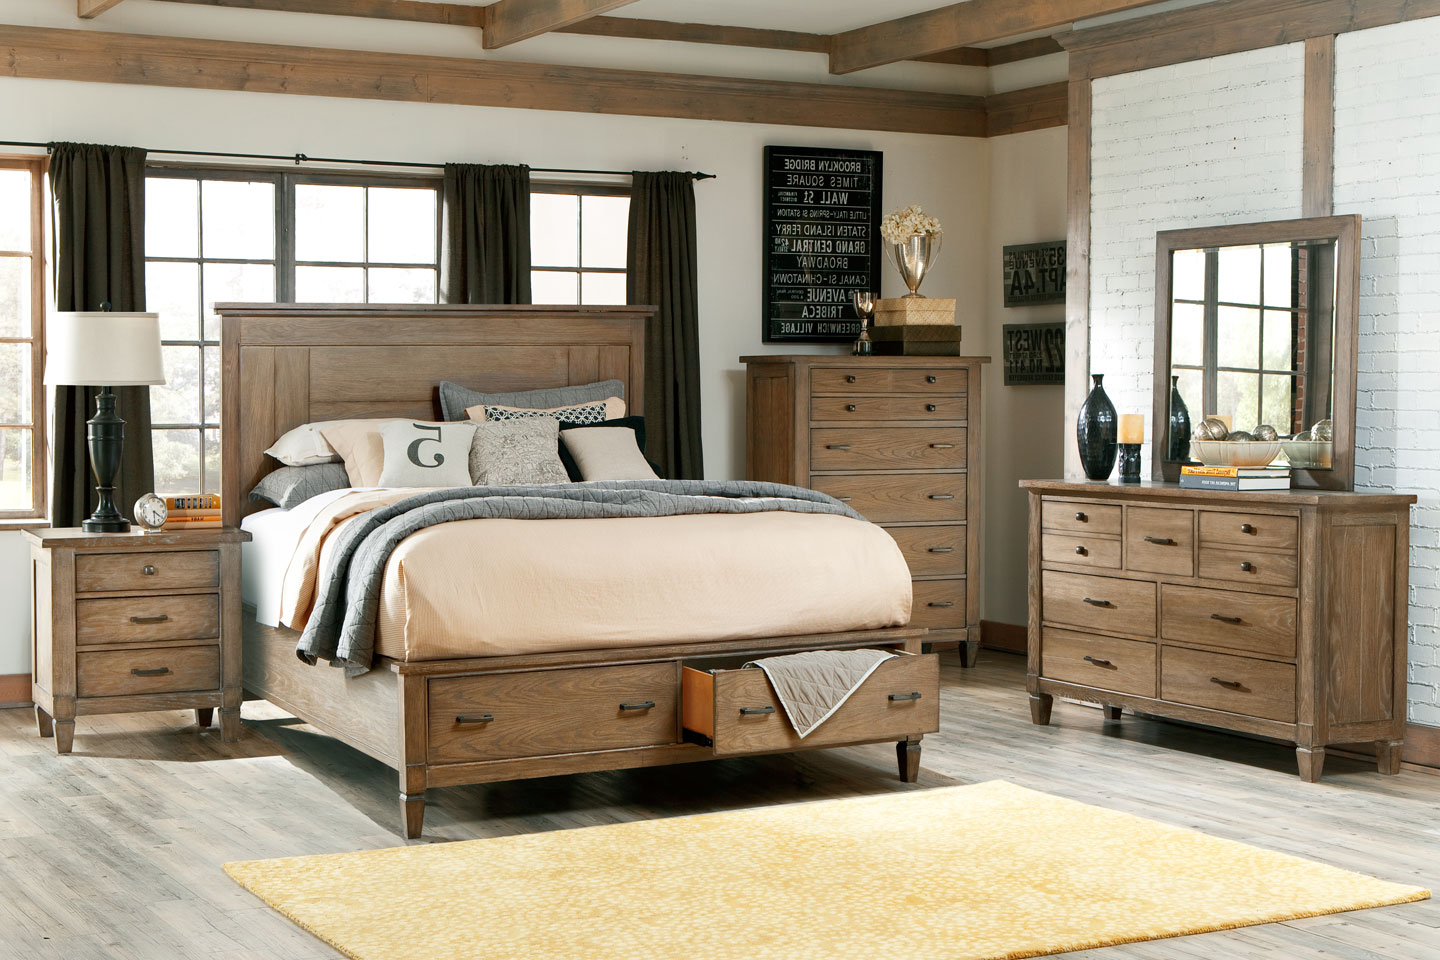 Bedroom With Wooden Furniture - Best Furniture 2017